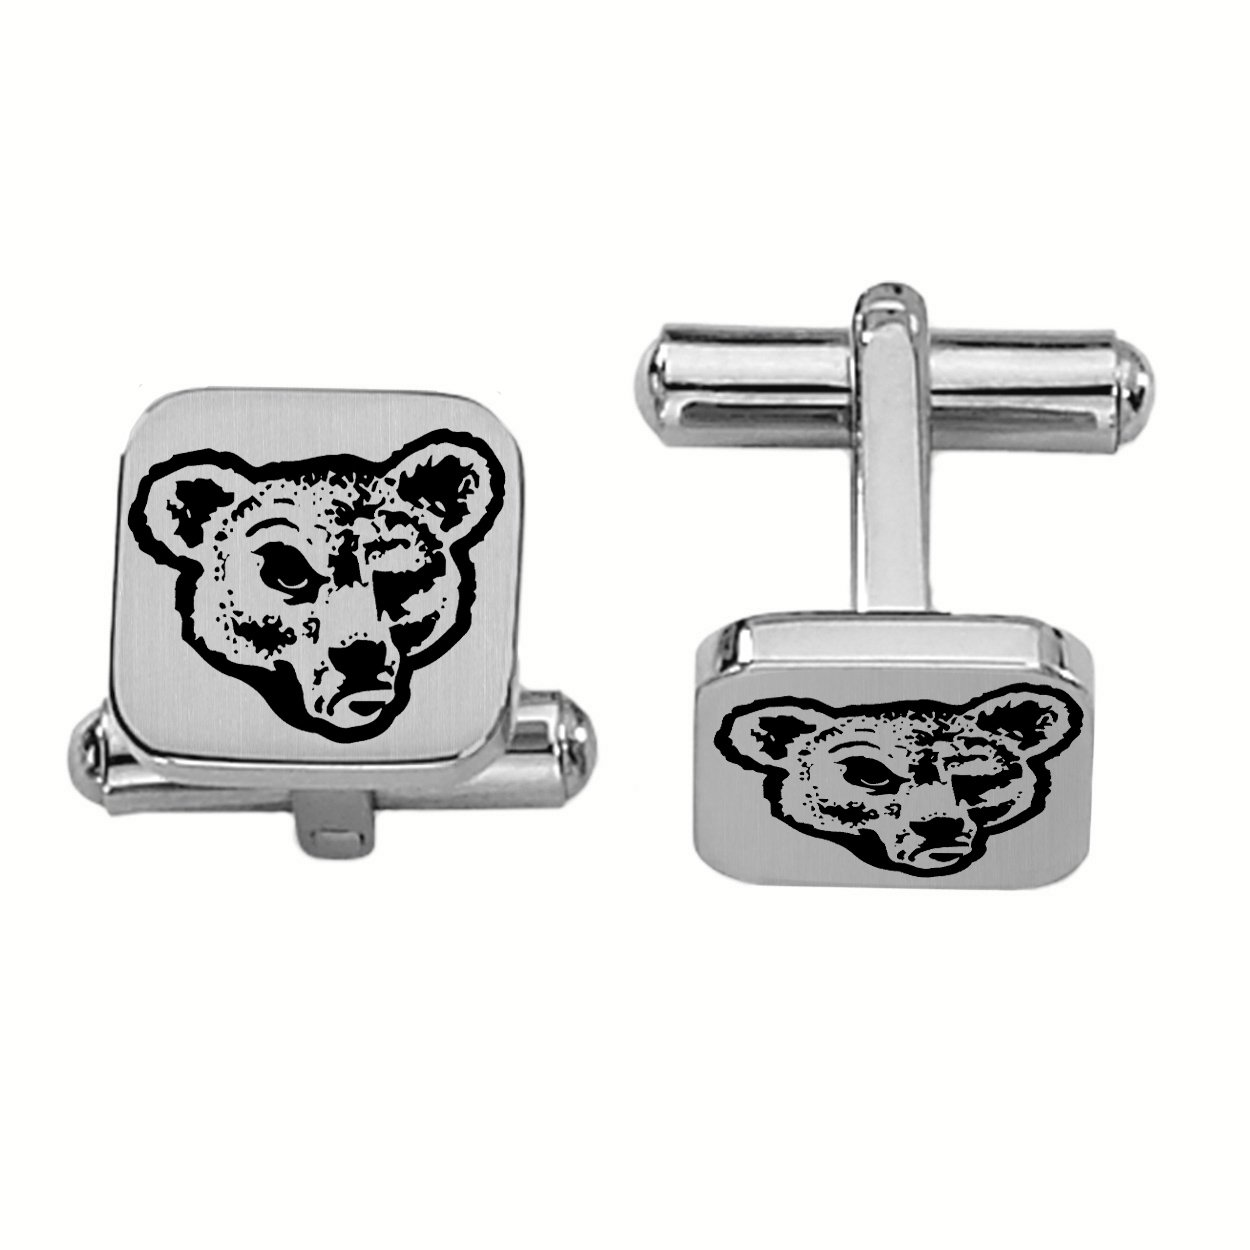 16MM Stainless Steel Brushed Satin Square Cuff Links